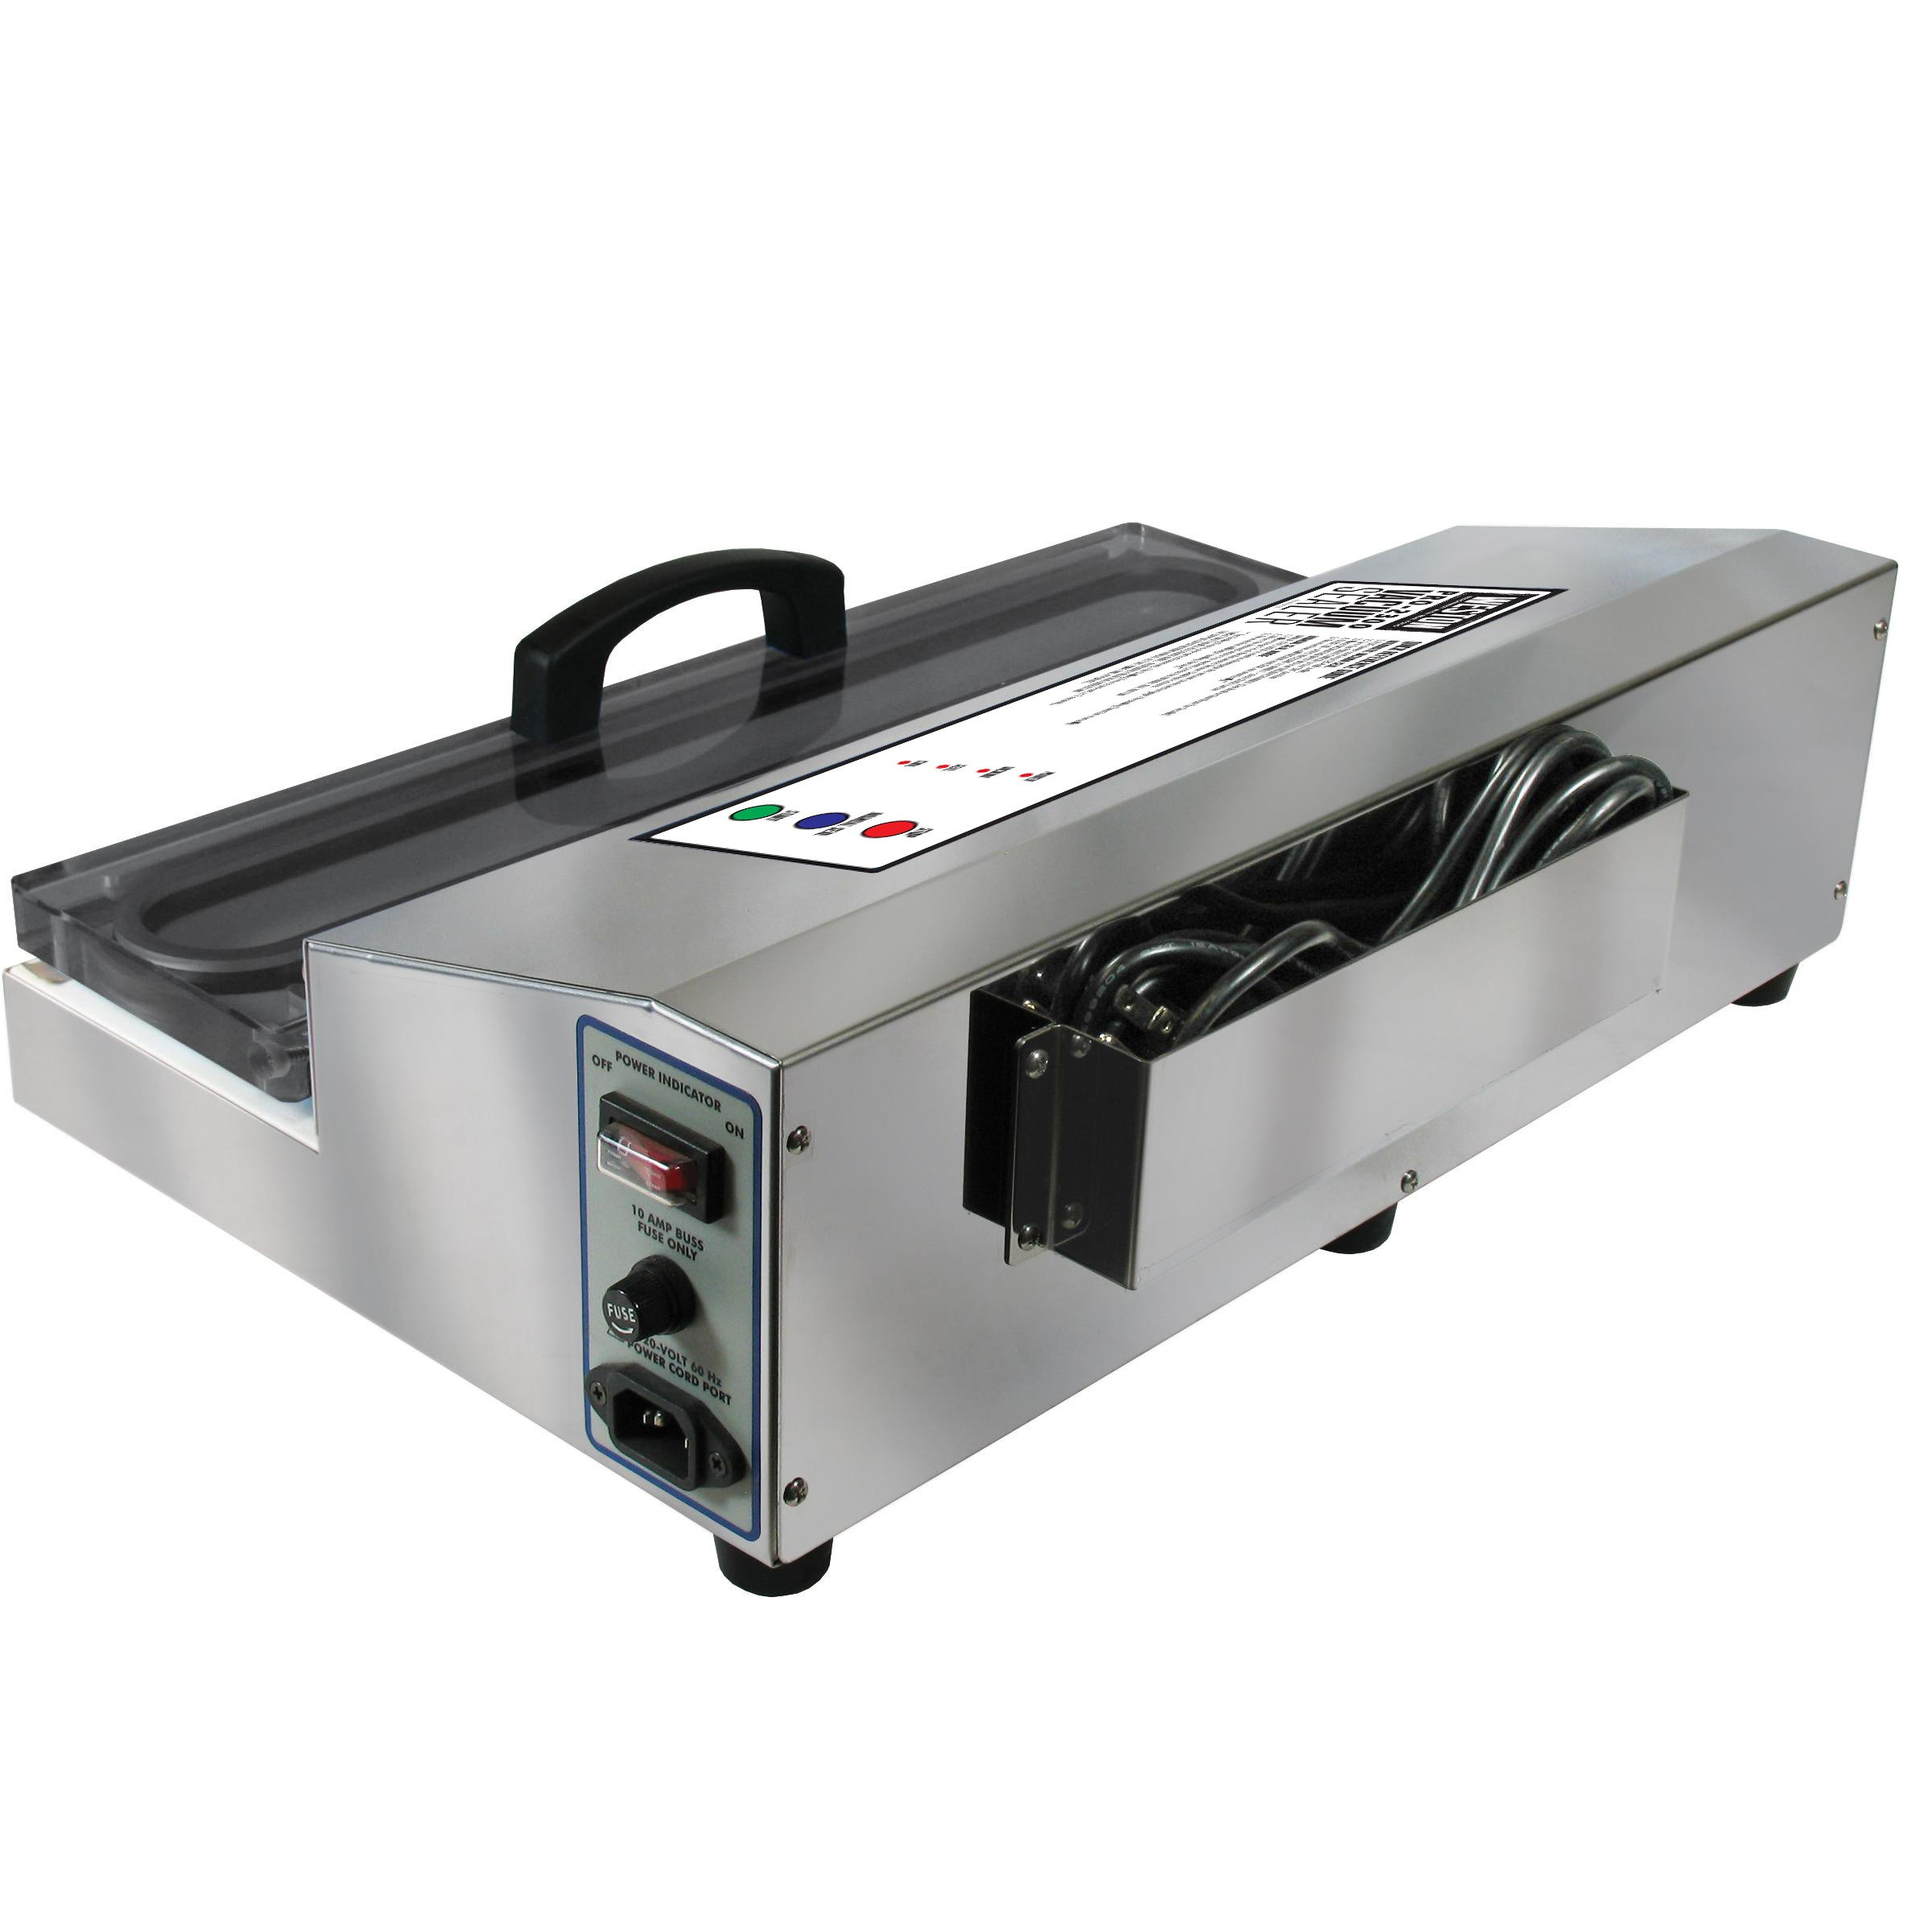 Weston Pro-2300 Commercial Grade Stainless Steel Vacuum Sealer (65-0201), Double Piston Pump by Weston (Image #3)